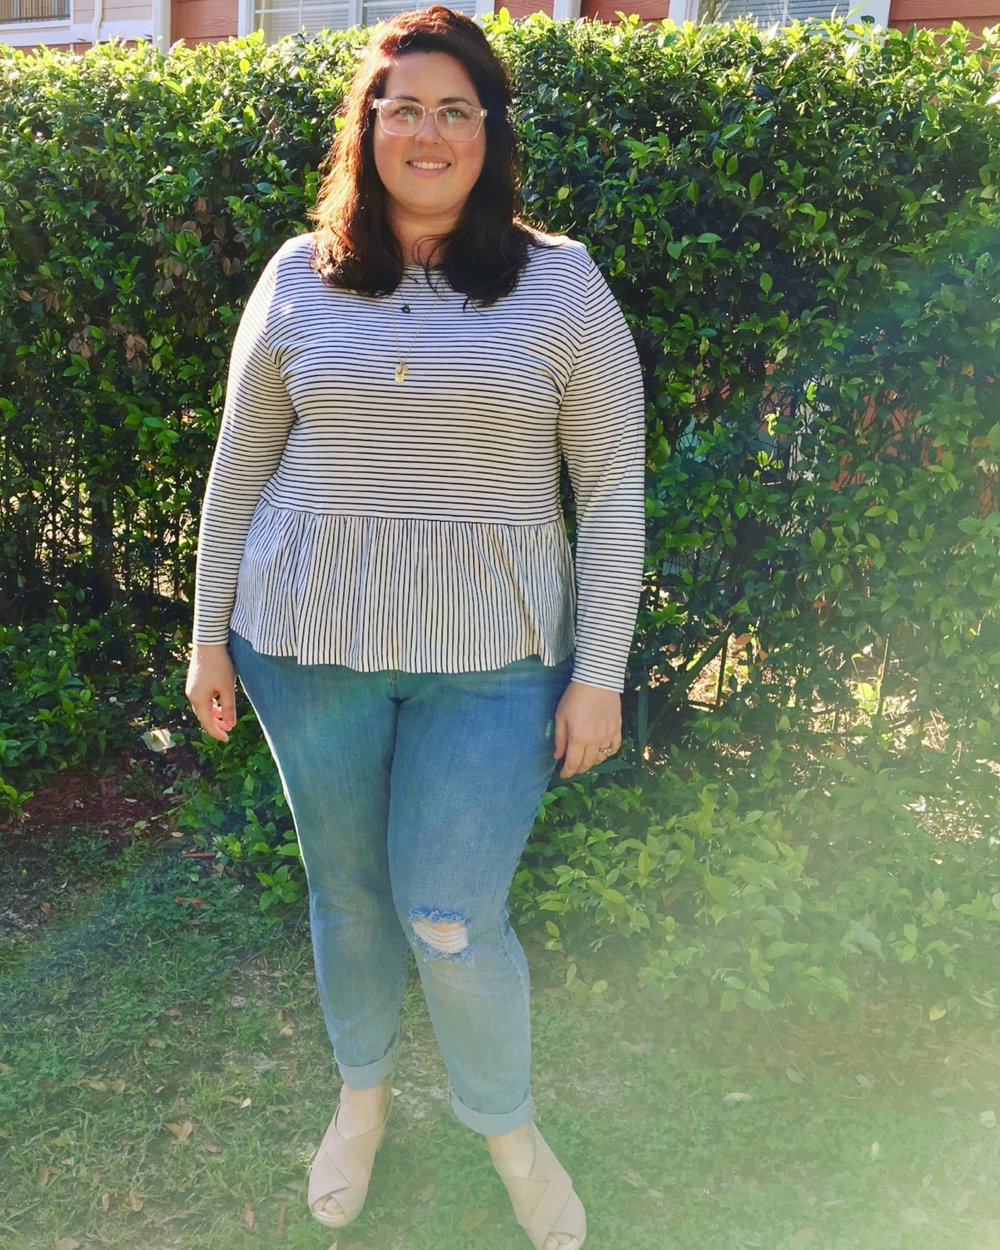 Outfit #1: comfy jeans, a peplum top and blush clogs for an easy Monday!